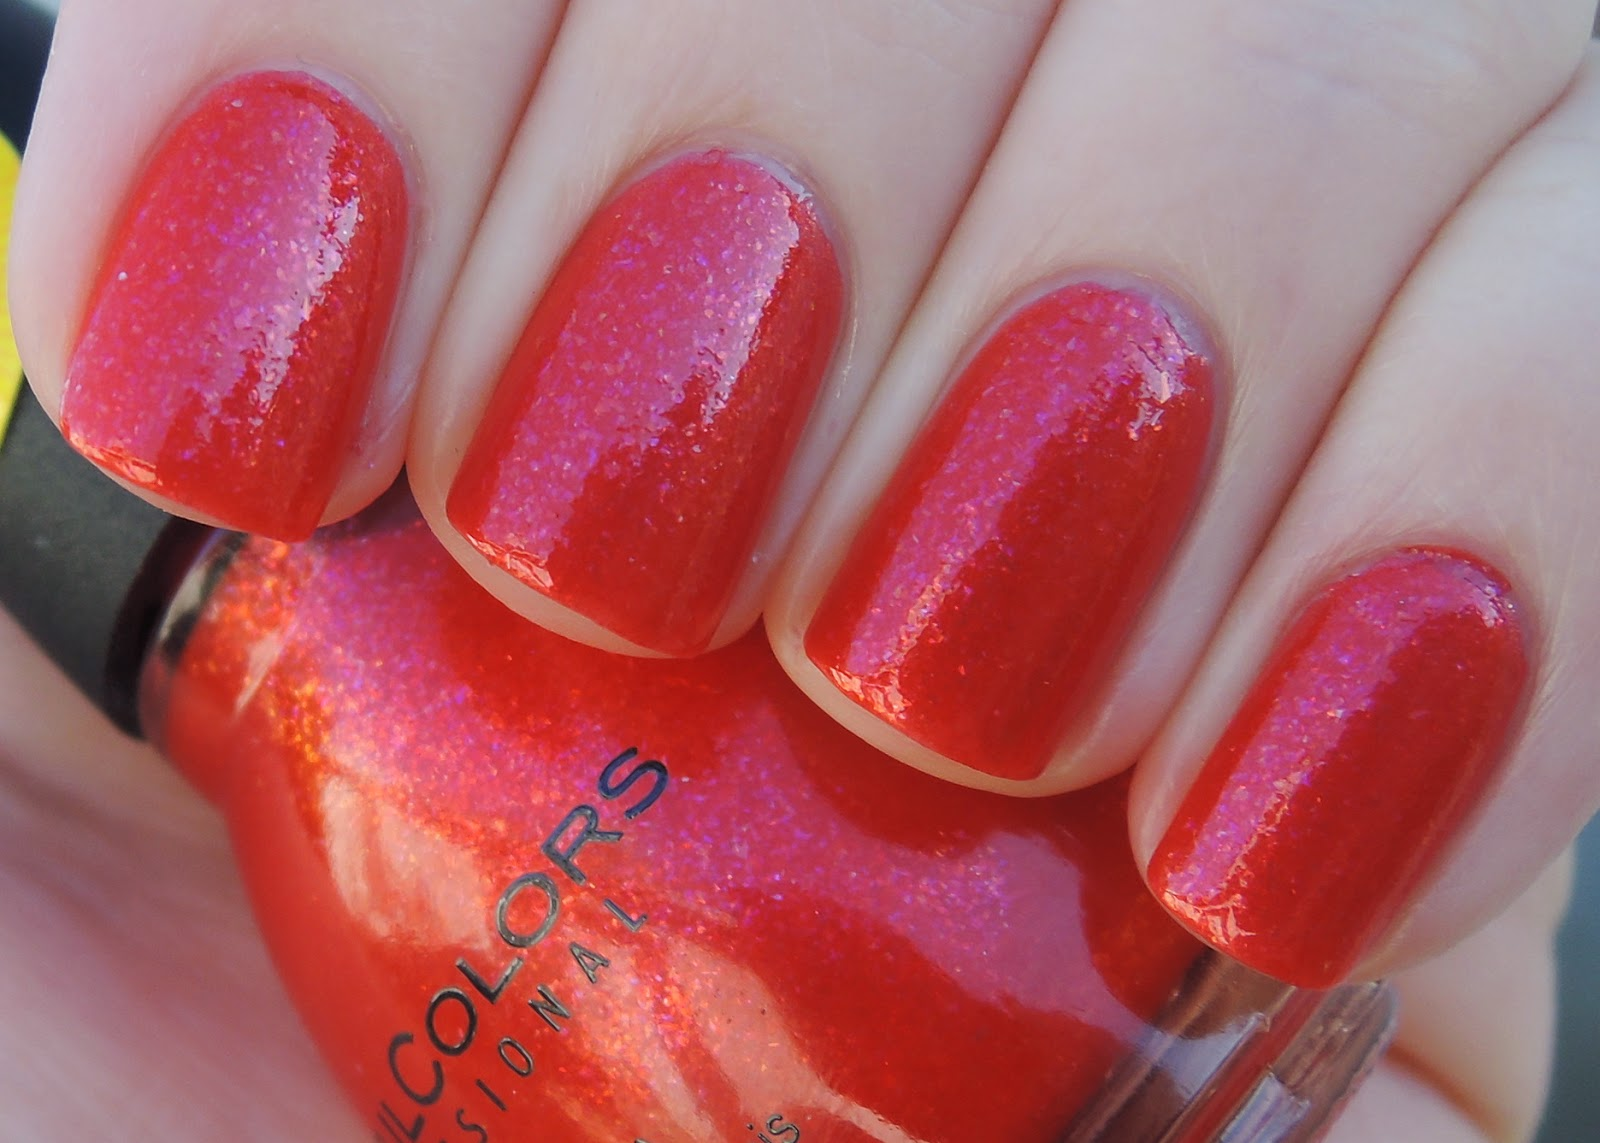 SinfulColors Horizon Shine